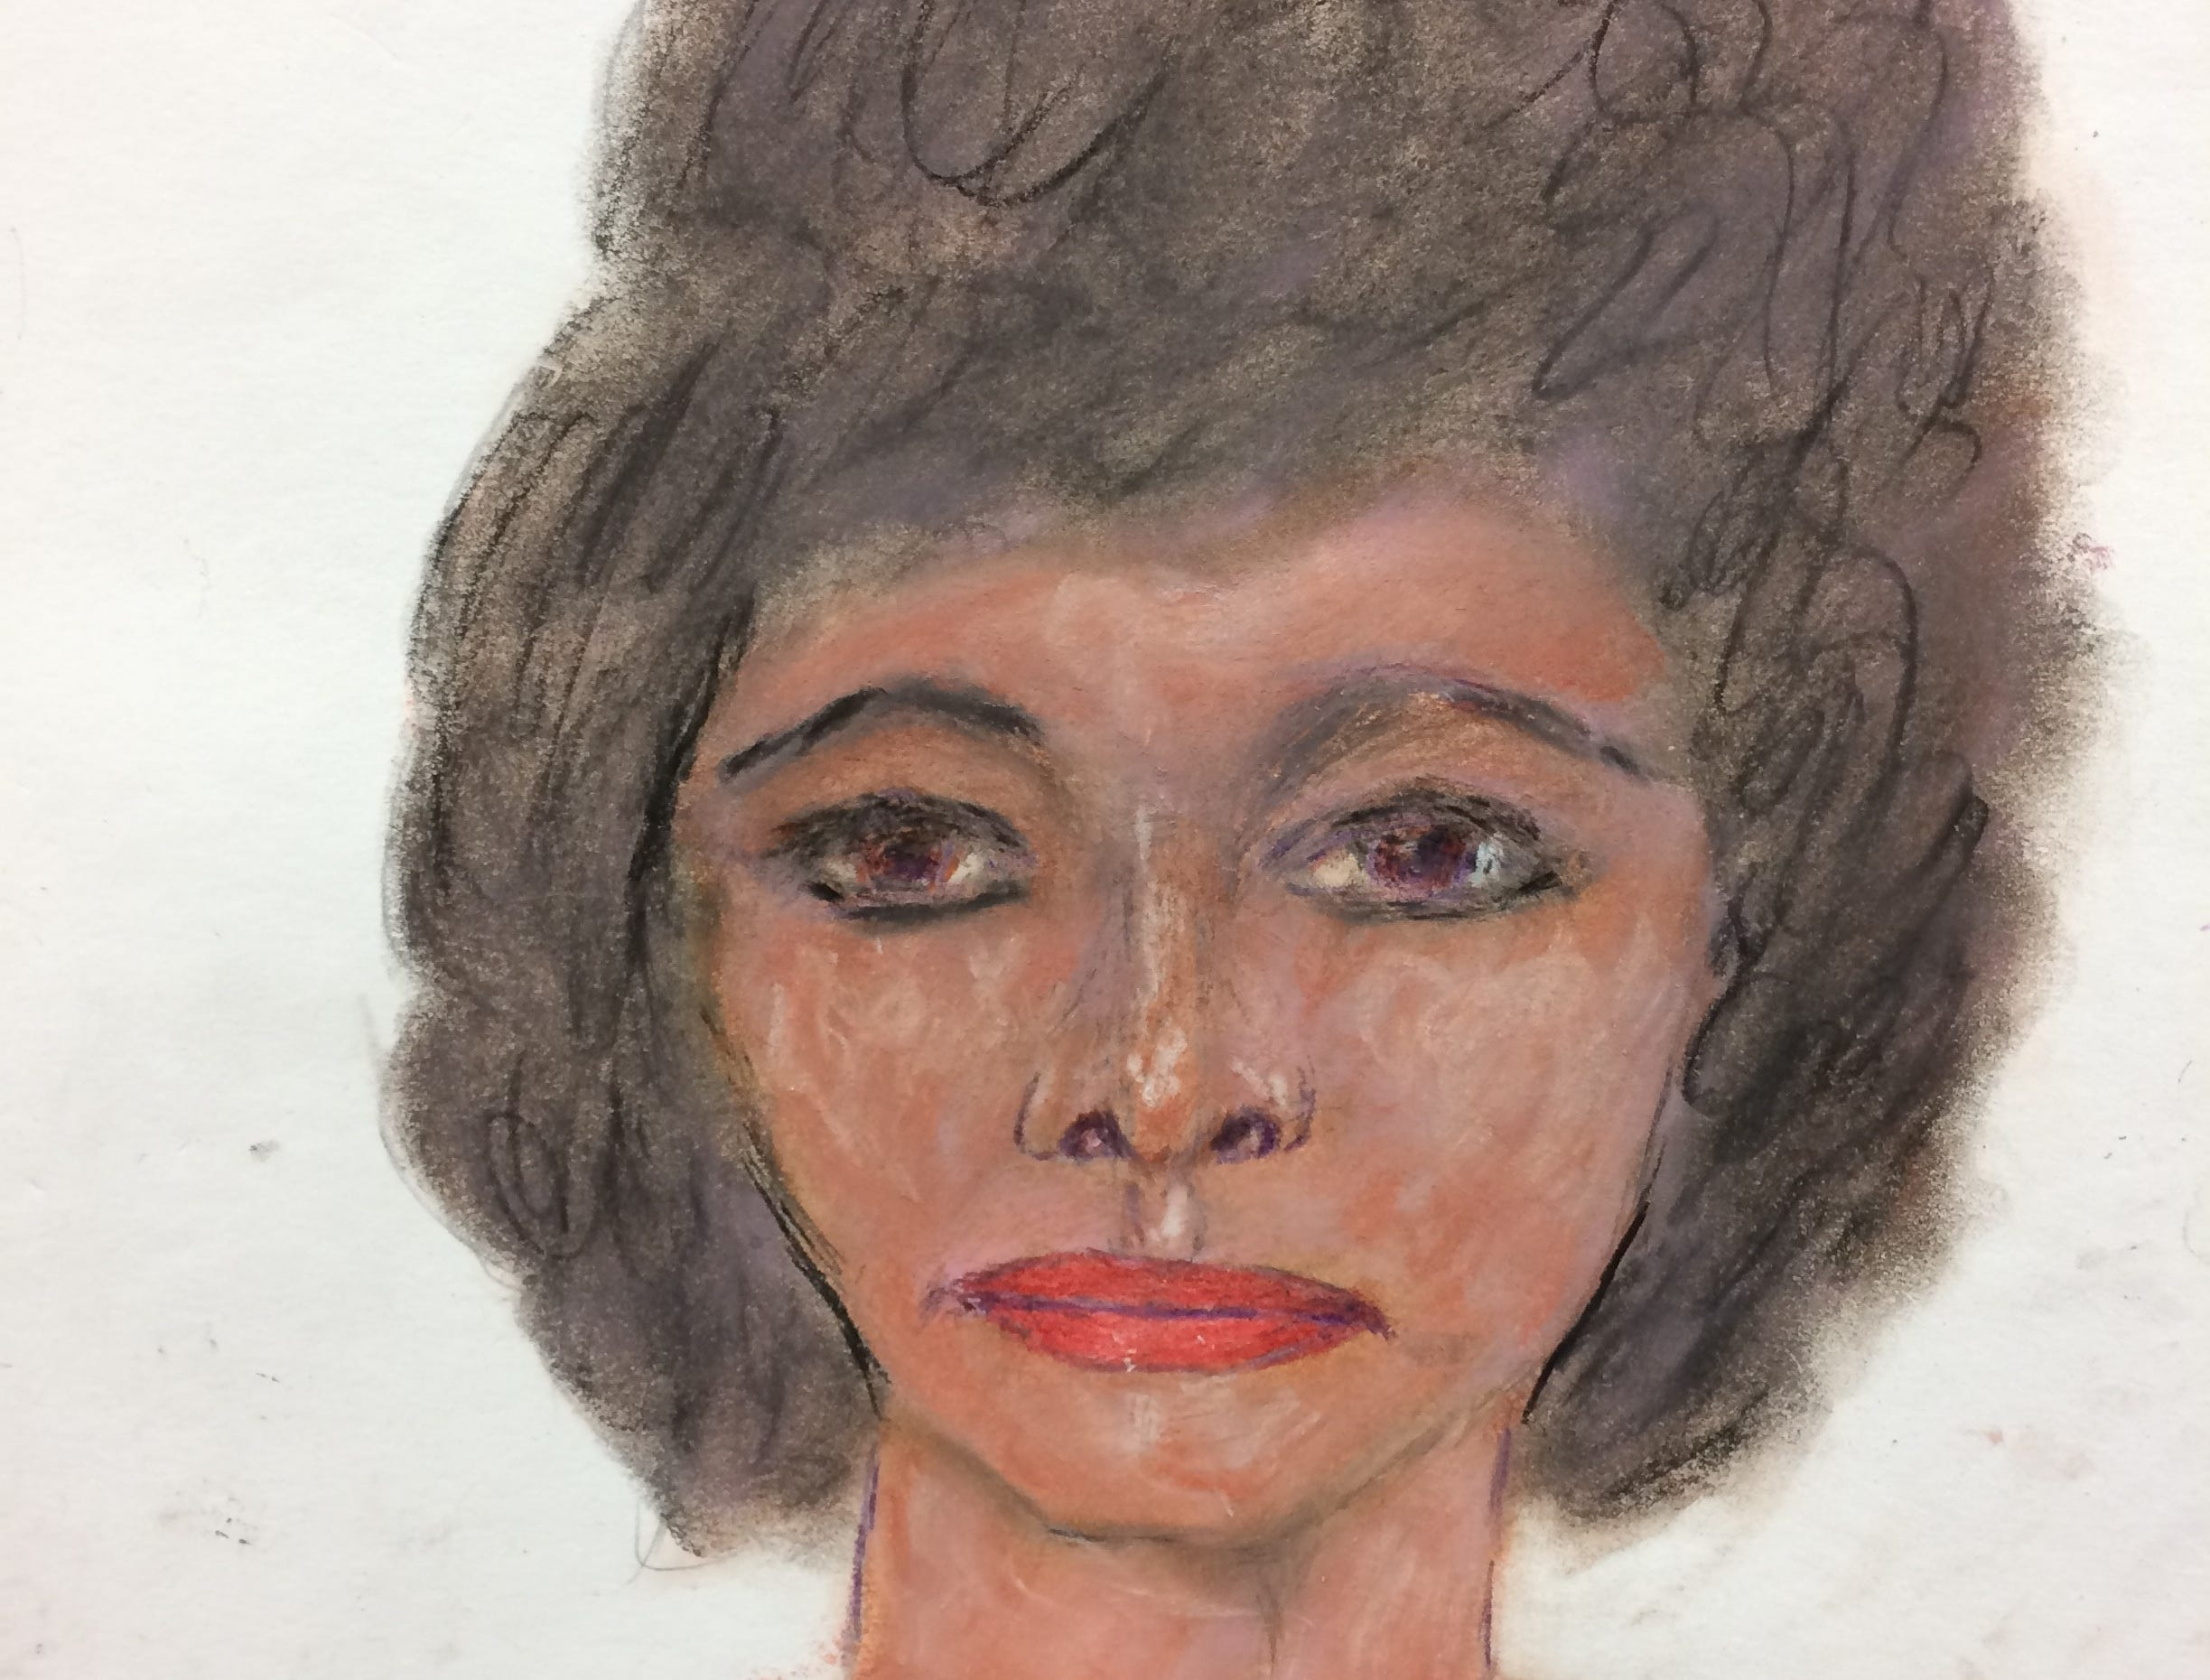 Serial killer Samuel Little drew this woman who he says he murdered in 1984 in Arkansas. Little told authorities she was either 28 or 29  years old and he'd picked her up in Memphis Tennessee. This portrait helped link Little to a body found in West Memphis but the woman's body has yet to be identified.